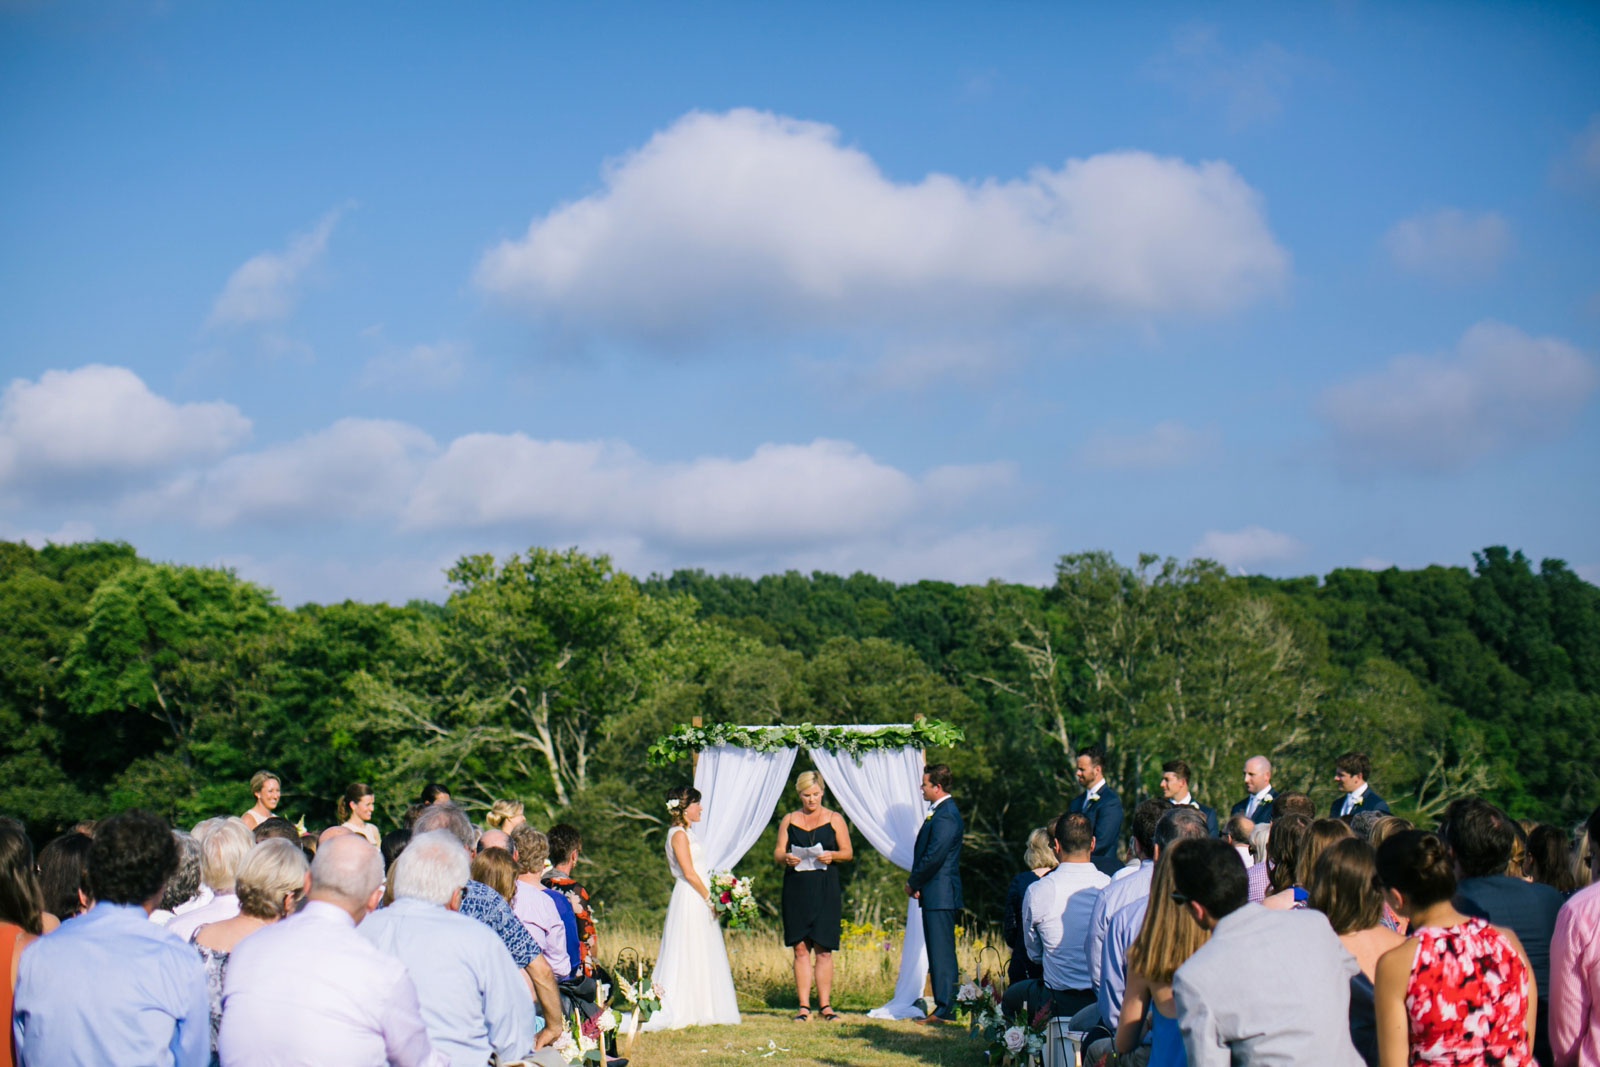 Wide shot of wedding ceremony from the back, summer outdoor wedding ceremony on farm